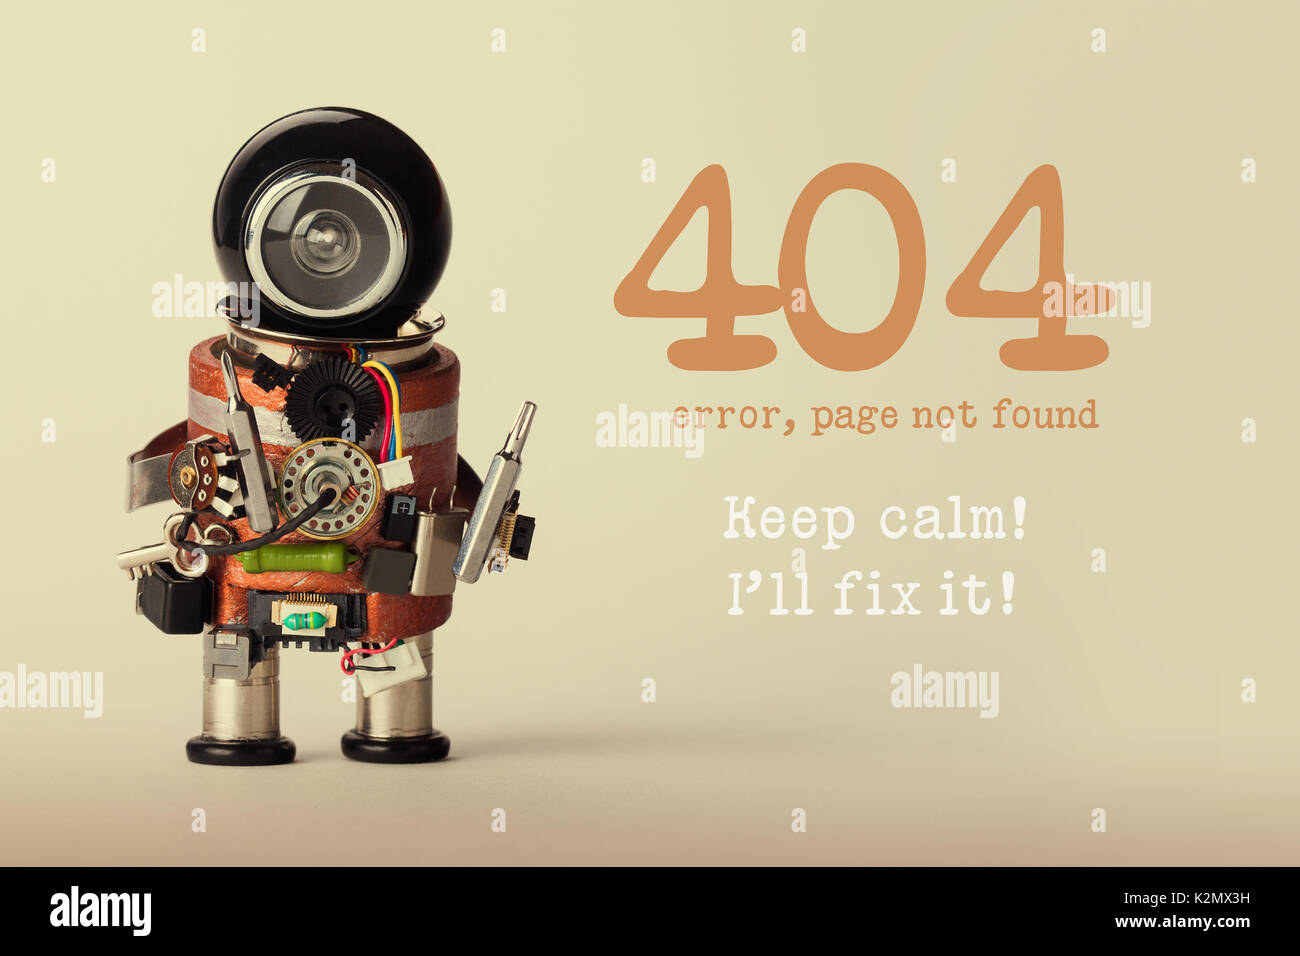 Page not found template for website. Robot toy repairman with screwdriver and 404 error warning message Keep calm I will fix it. Beige gradient background. - Stock Image